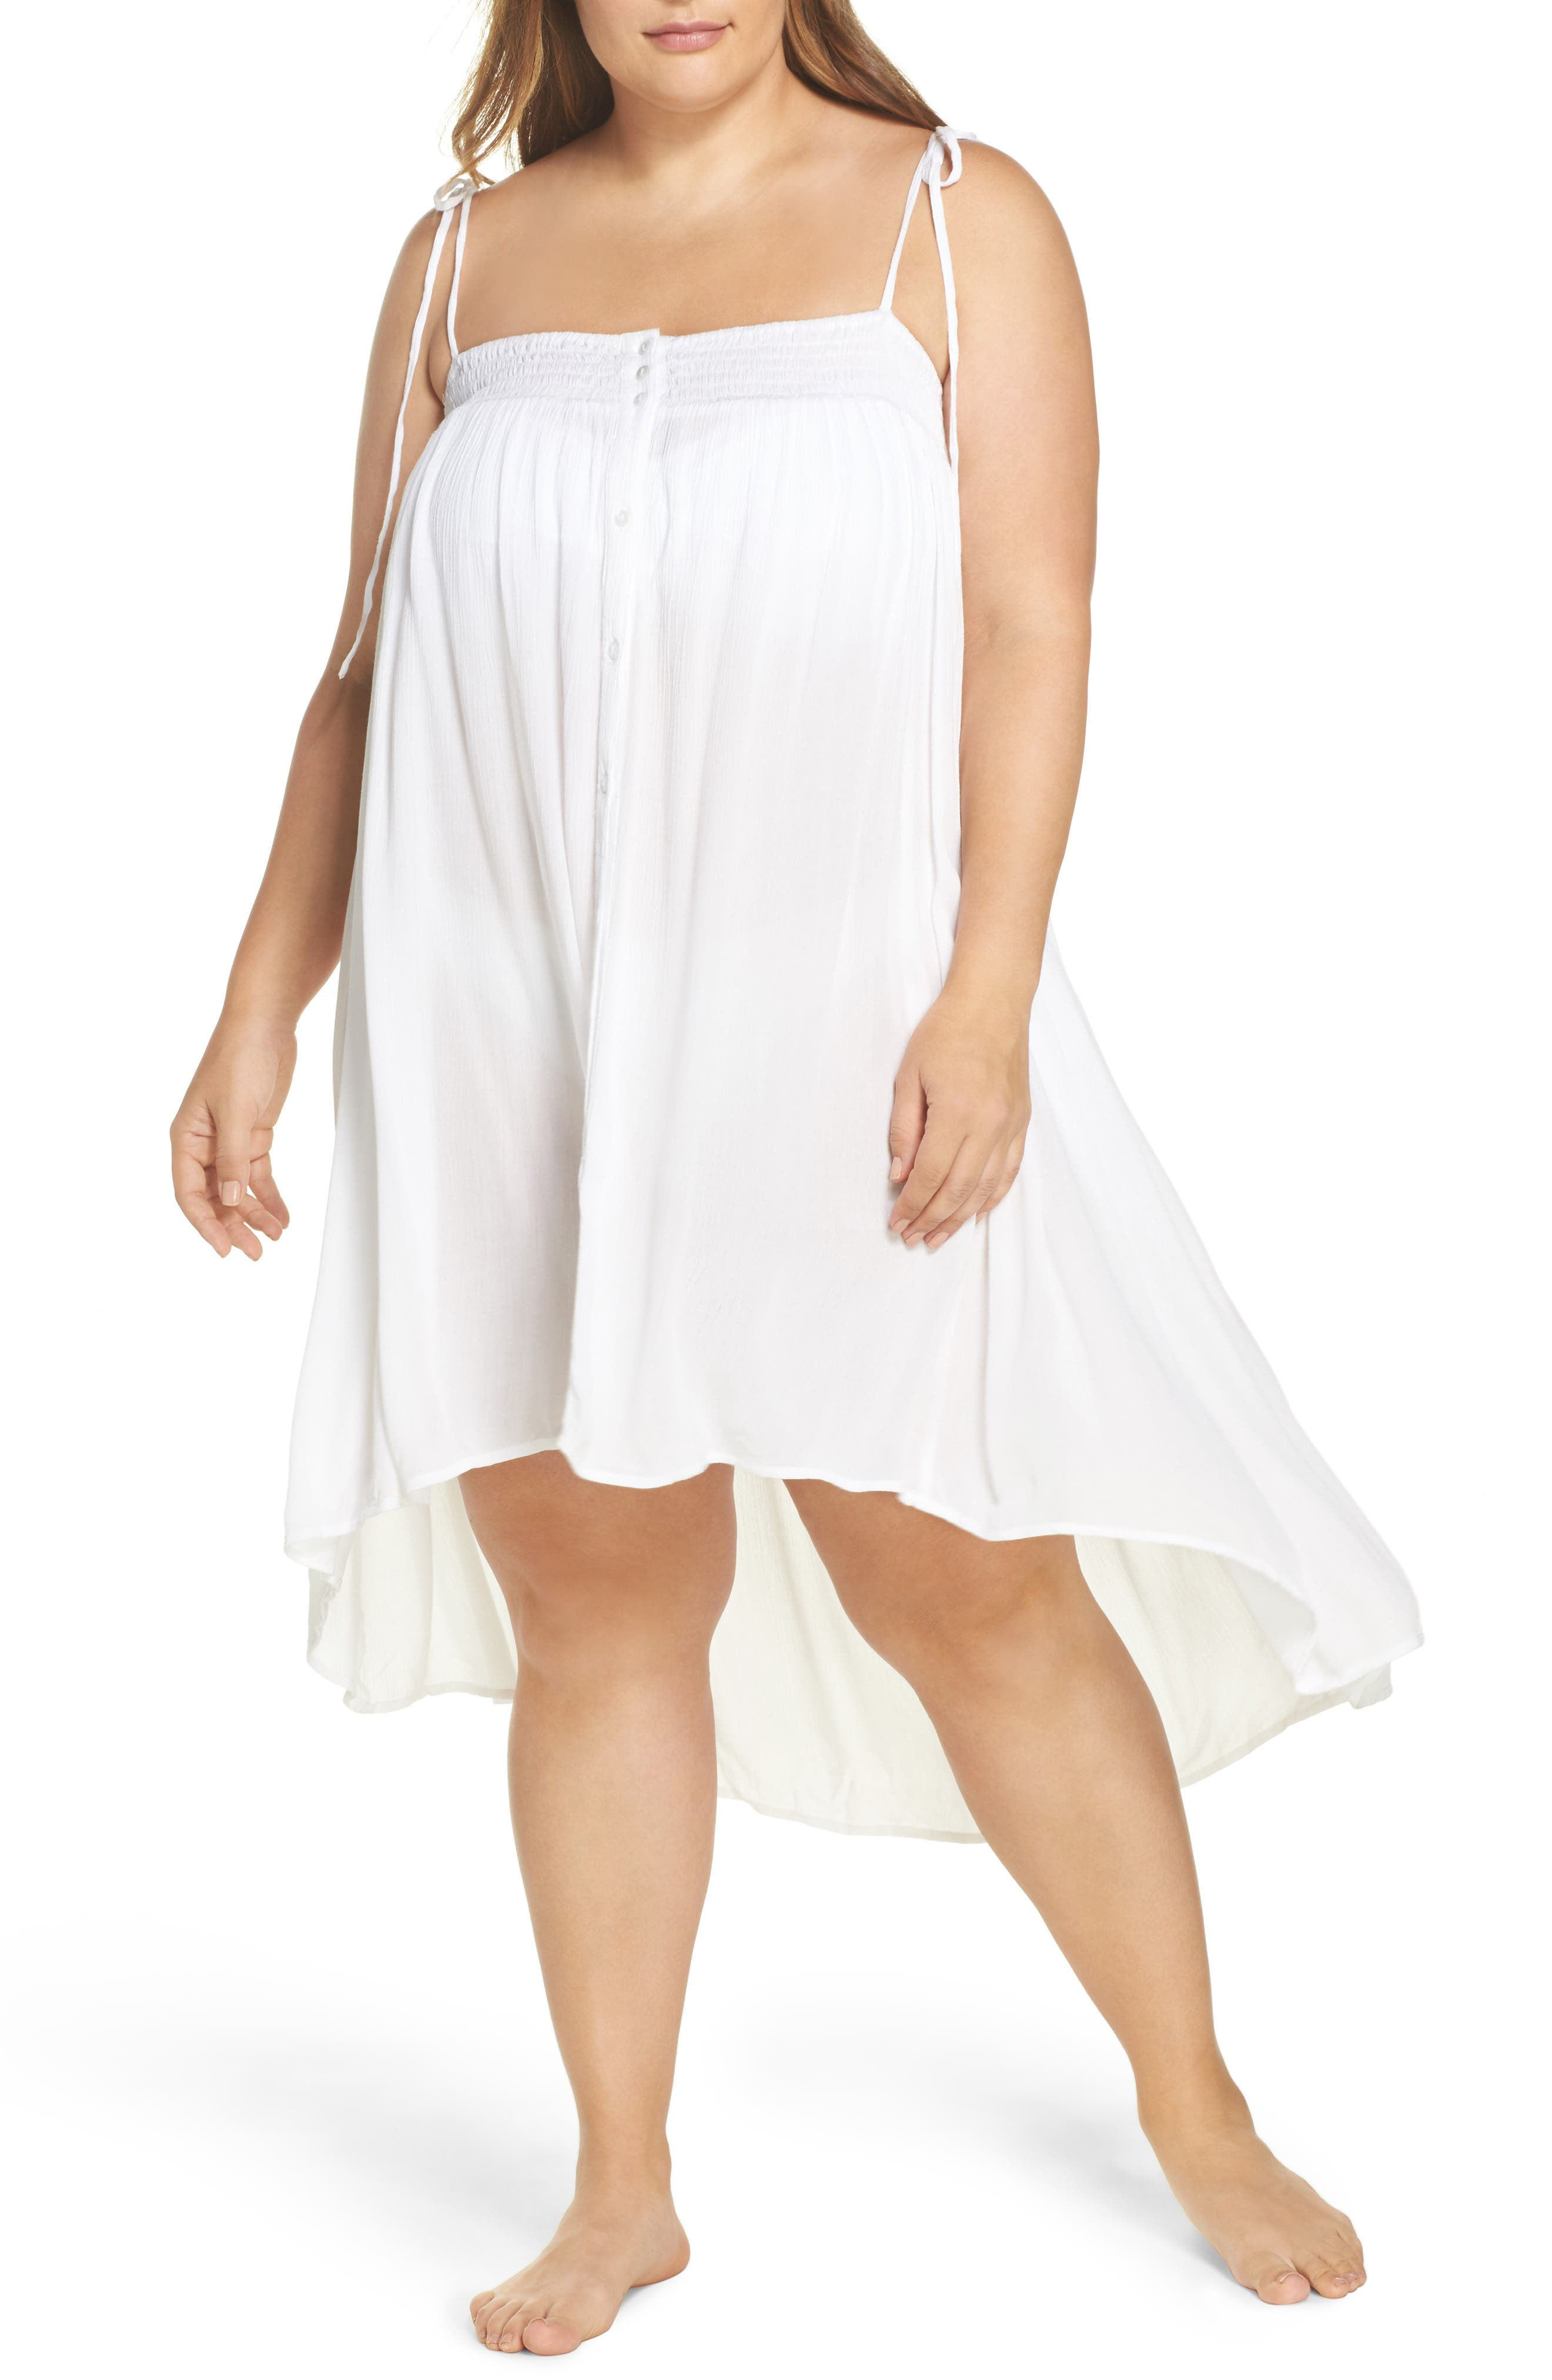 Oliva Cover-Up Dress,                         Main,                         color, 100